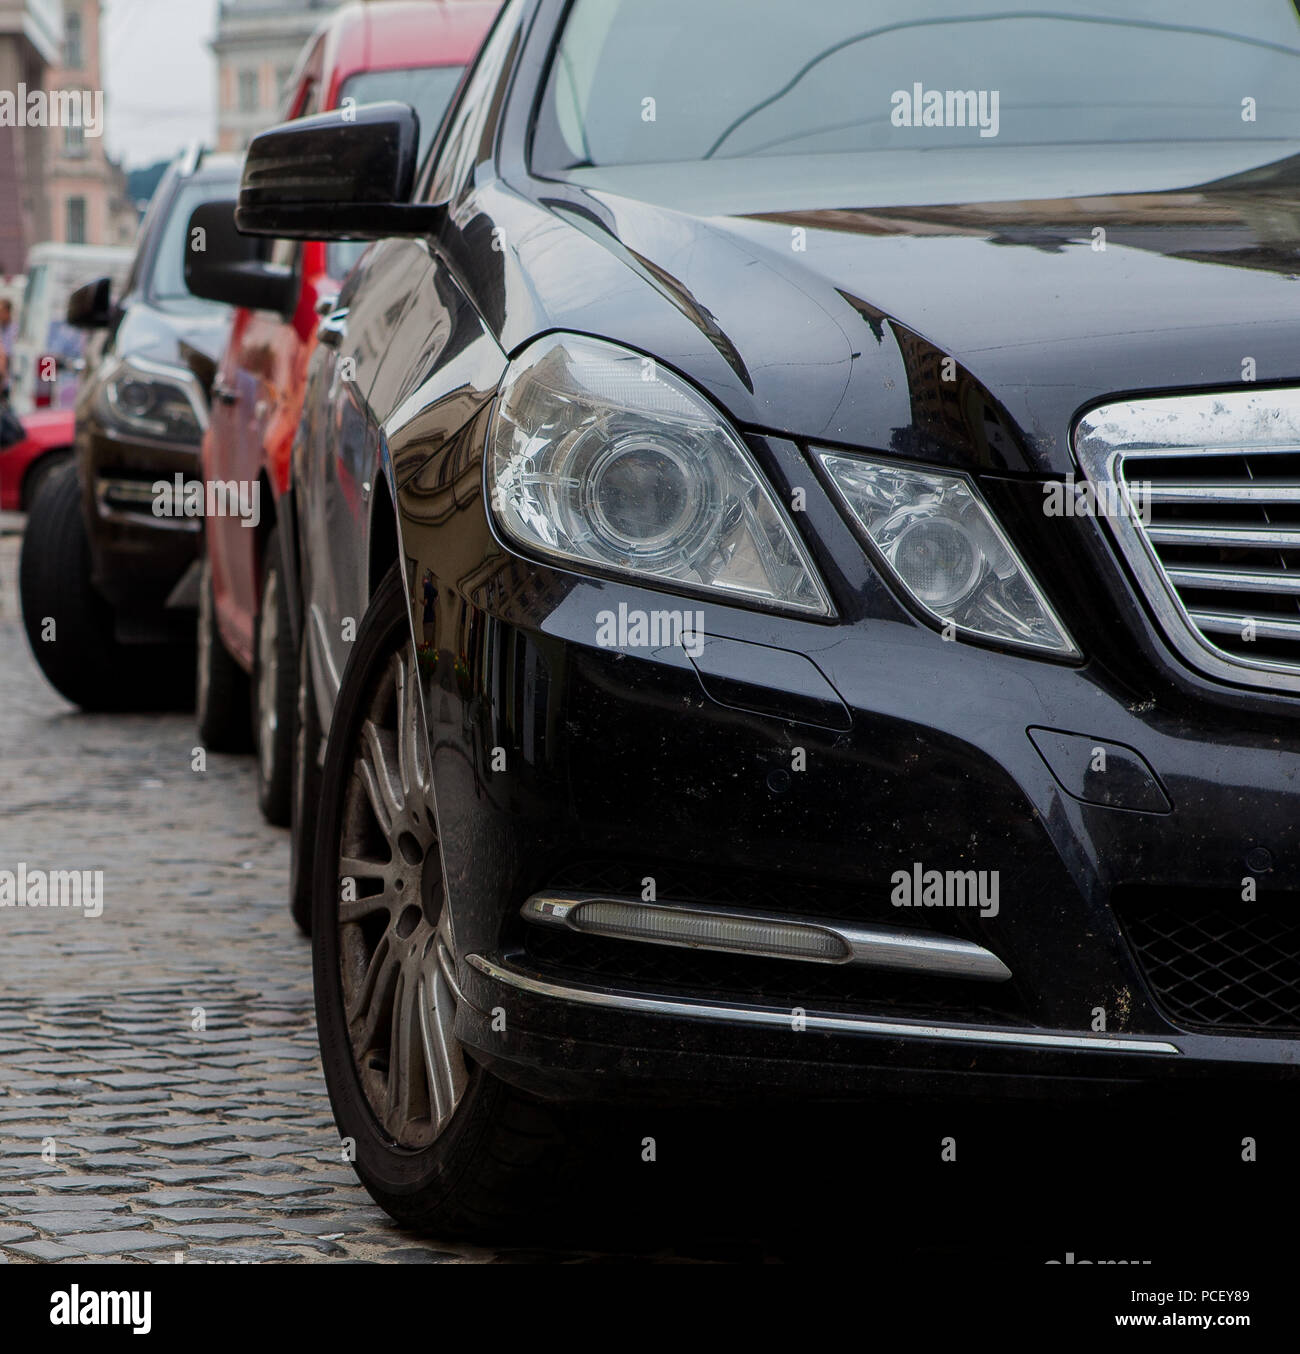 Close Up Headlight Of Black Modern Car With Other Cars On Background